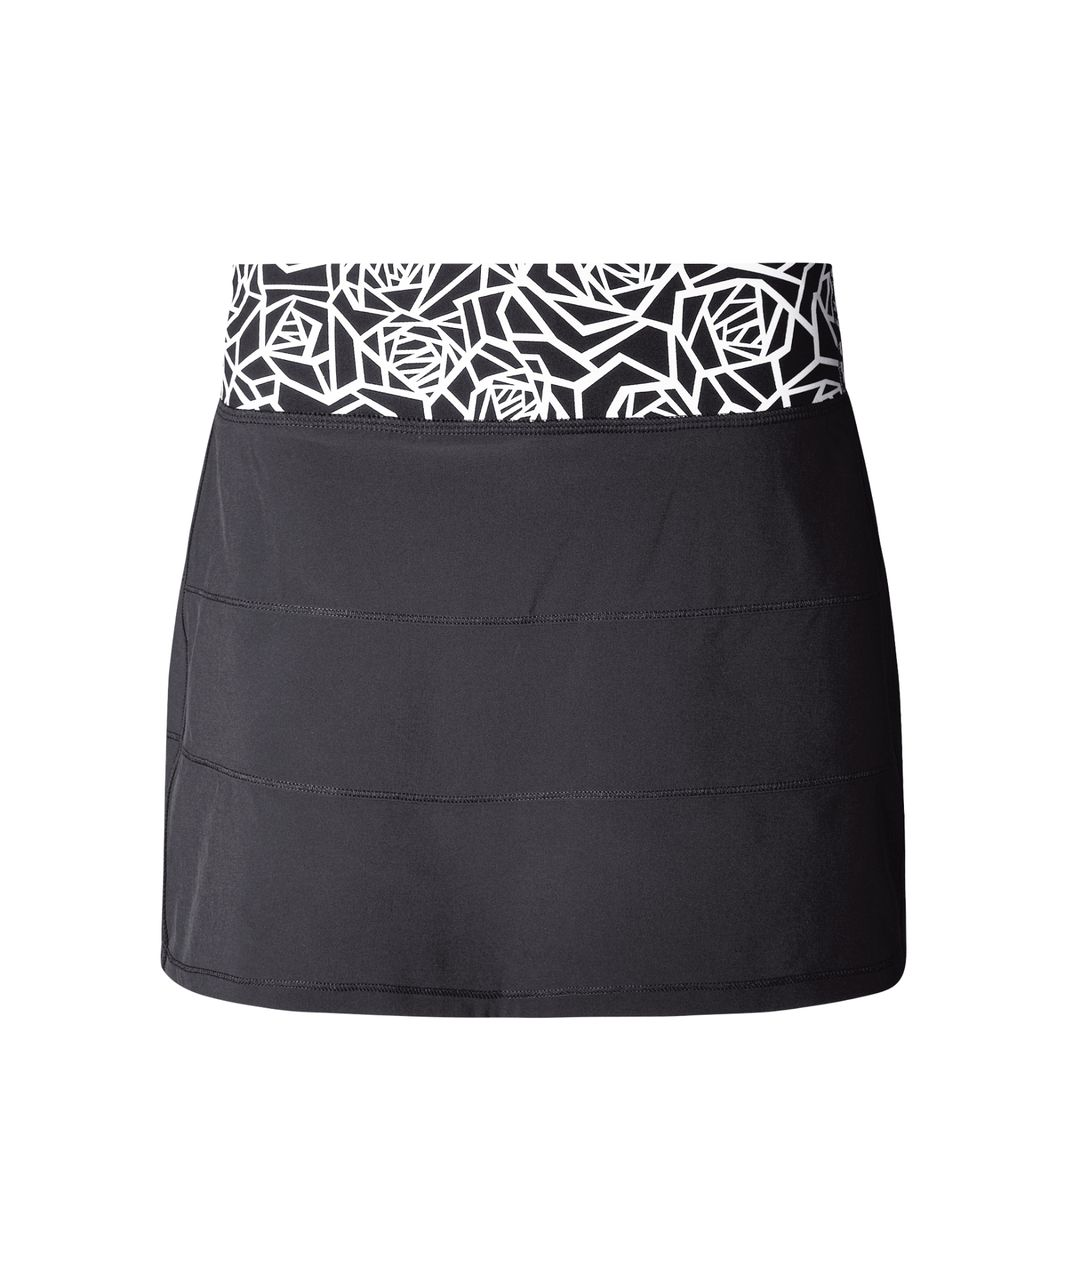 Lululemon Pace Rival Skirt II (Tall) - Black / Posey Black White